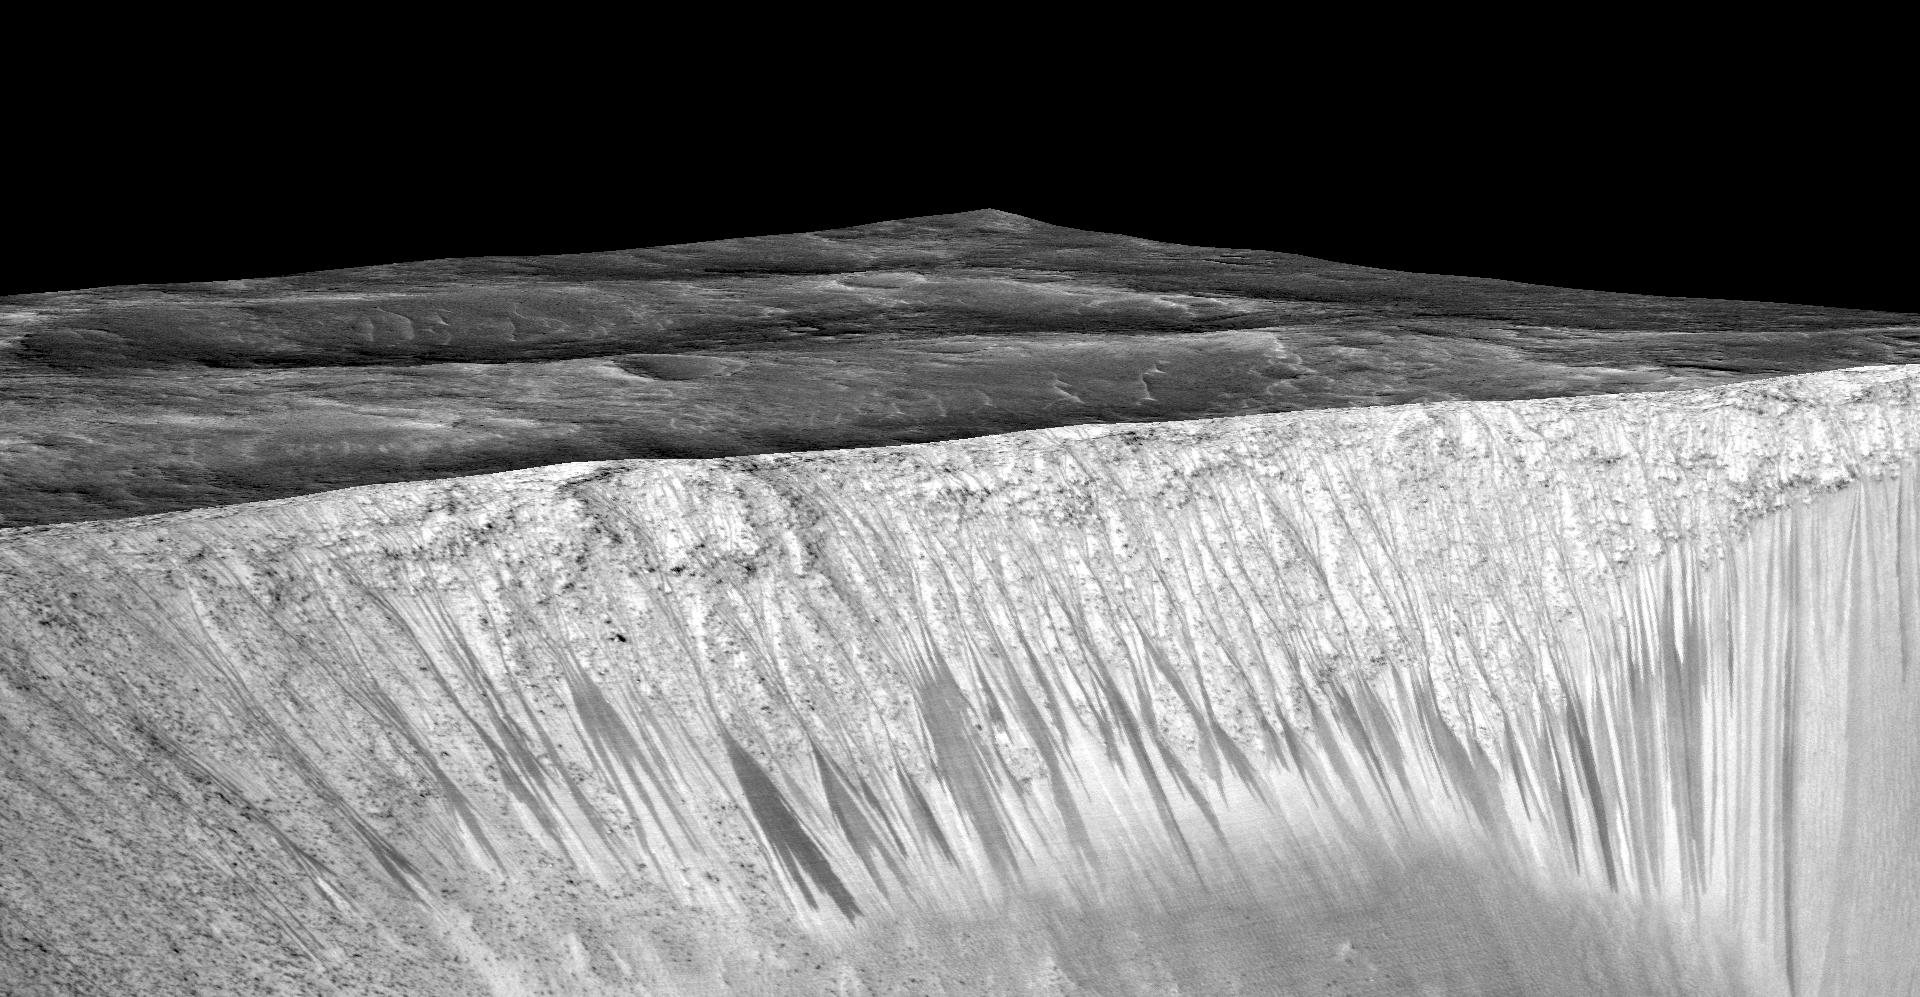 The dark, narrow streaks flowing downhill on Mars at sites such as this portion of Horowitz Crater are inferred to be formed by seasonal flow of water on modern-day Mars. The streaks are roughly the length of a football field.